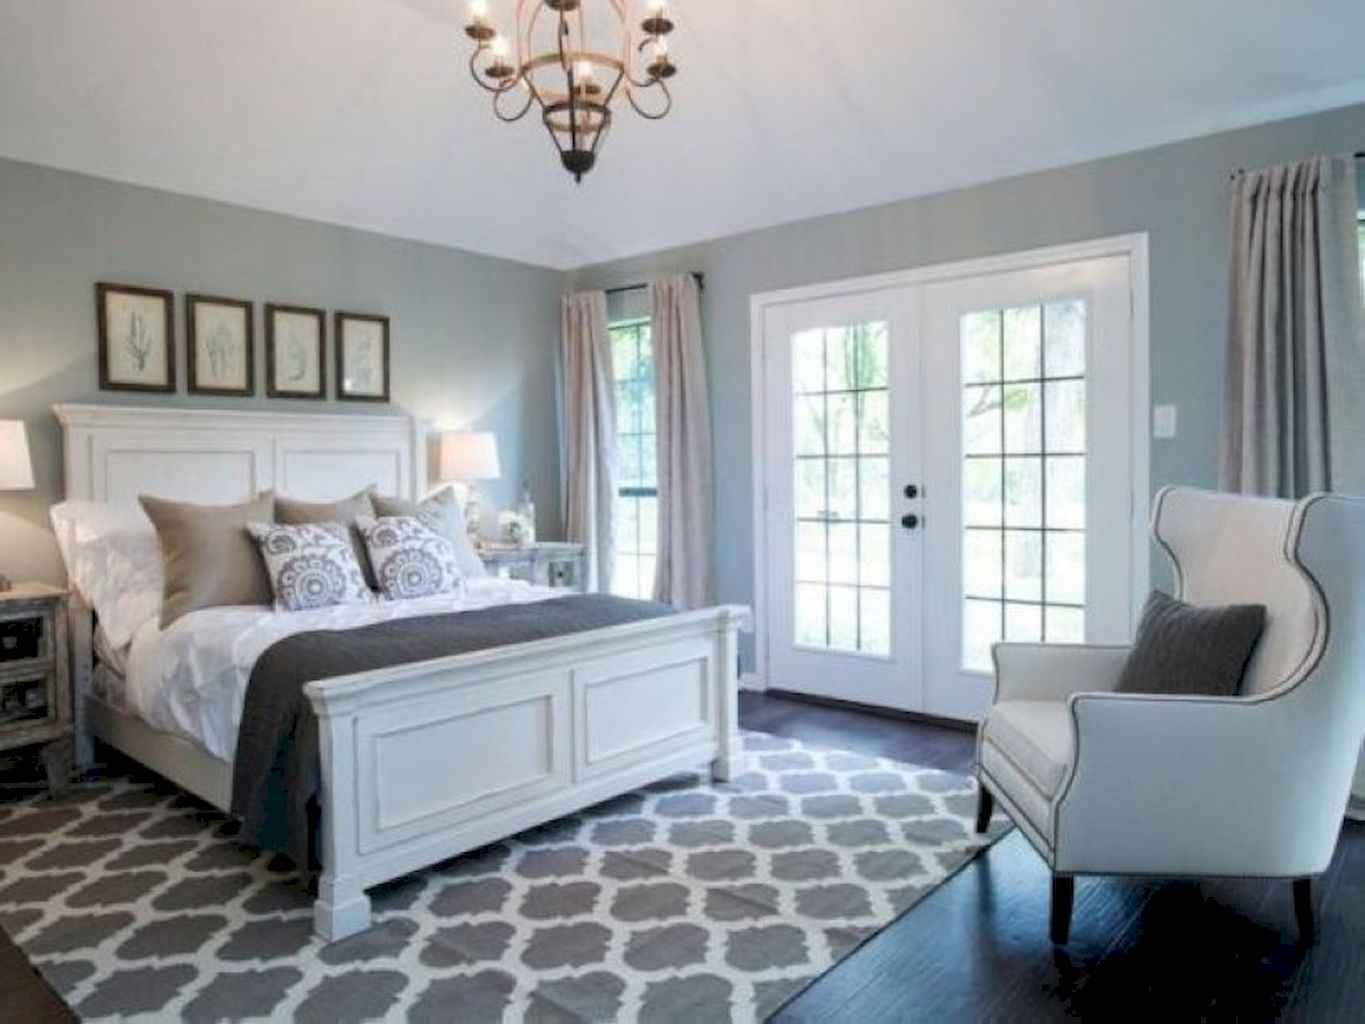 Awesome bedroom decoration ideas (43)